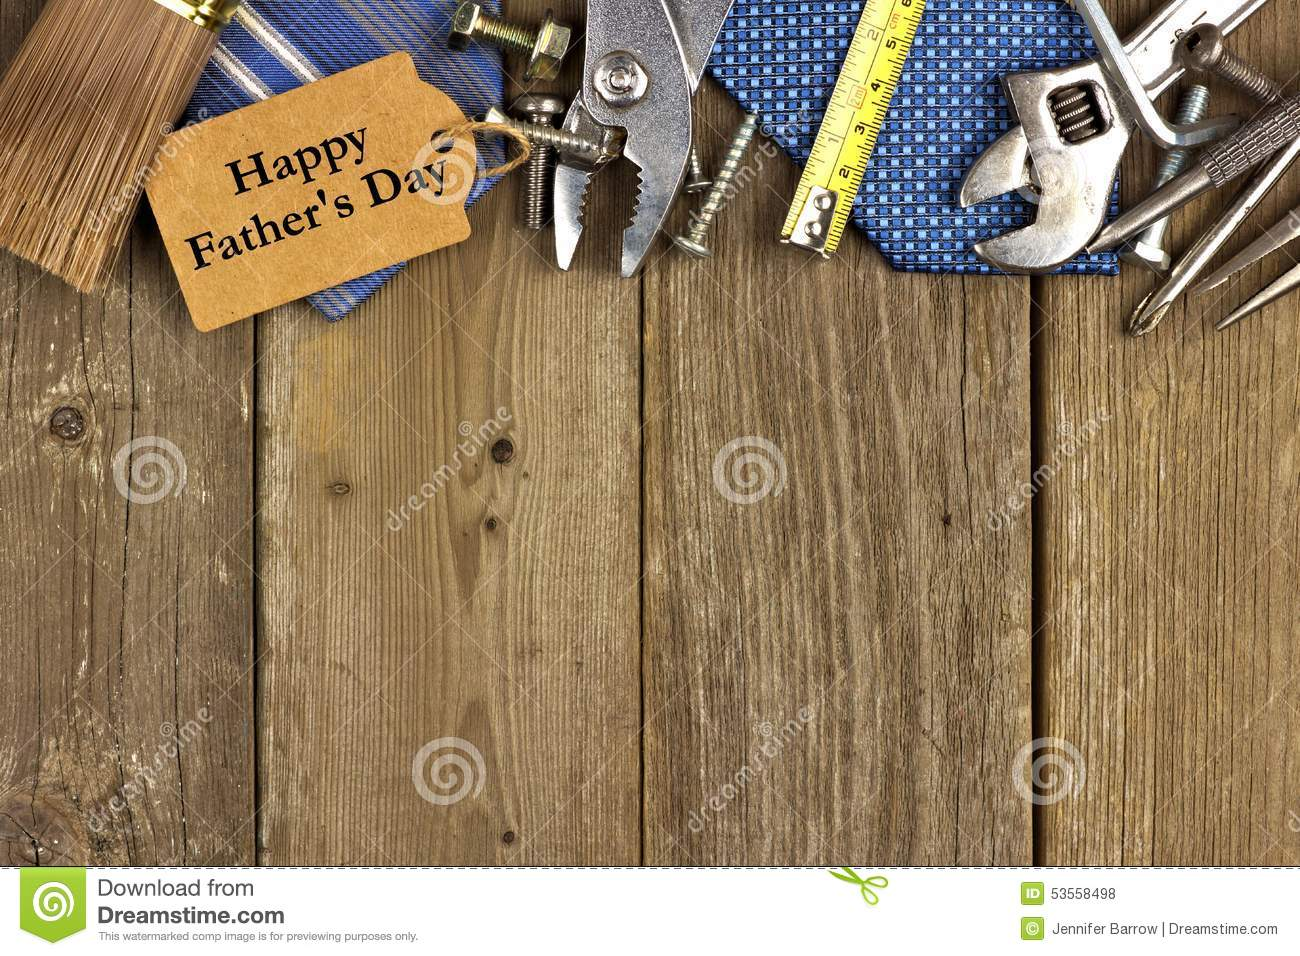 Fathers Day tag with tools and ties border on wood